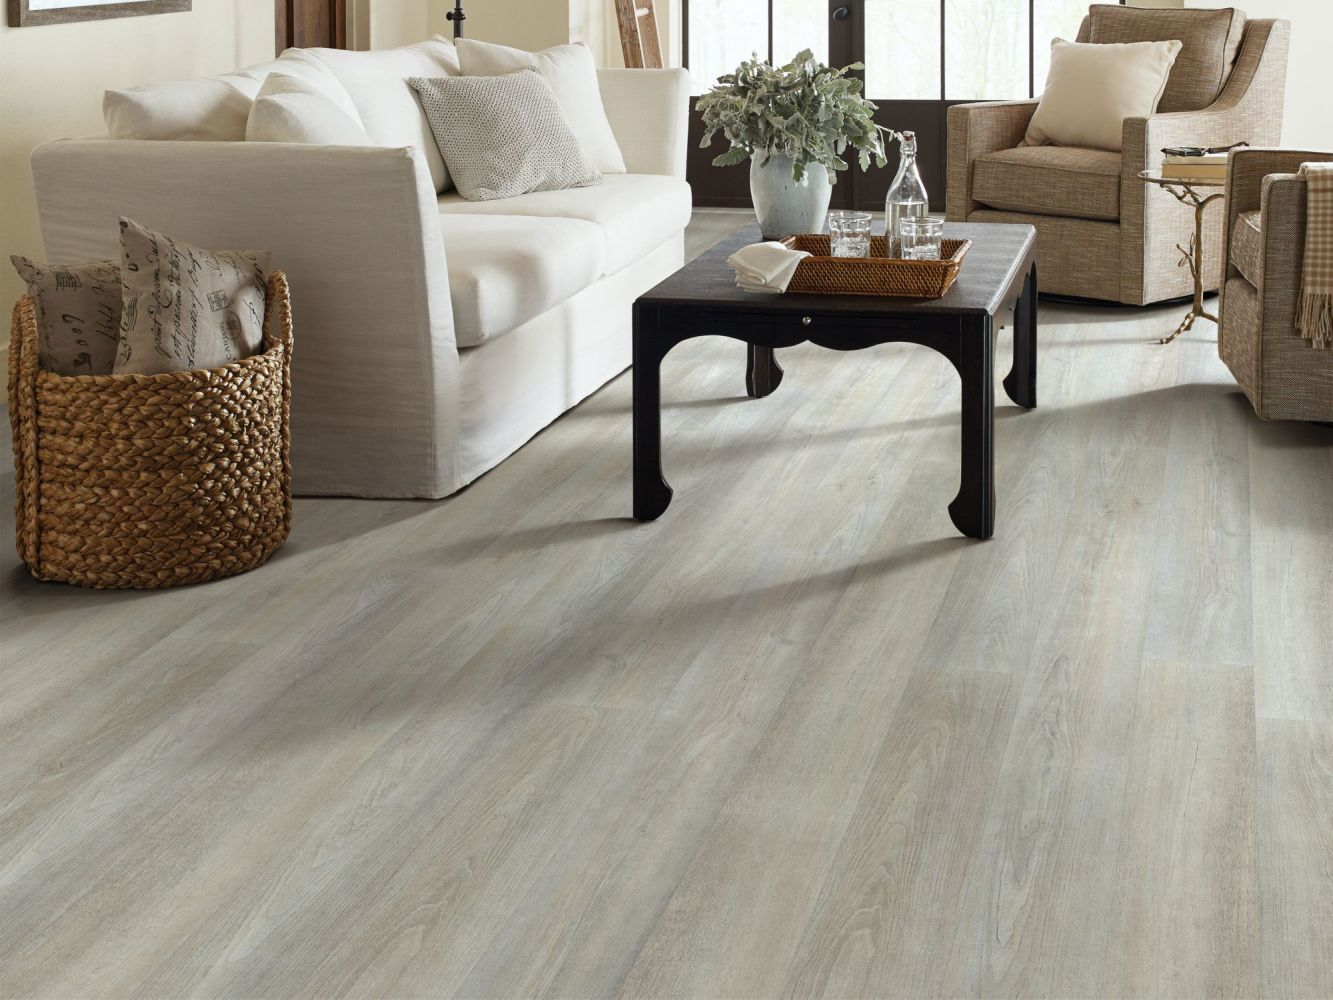 Shaw Floors Resilient Property Solutions Brio Plus Greige Walnut 05078_VE285